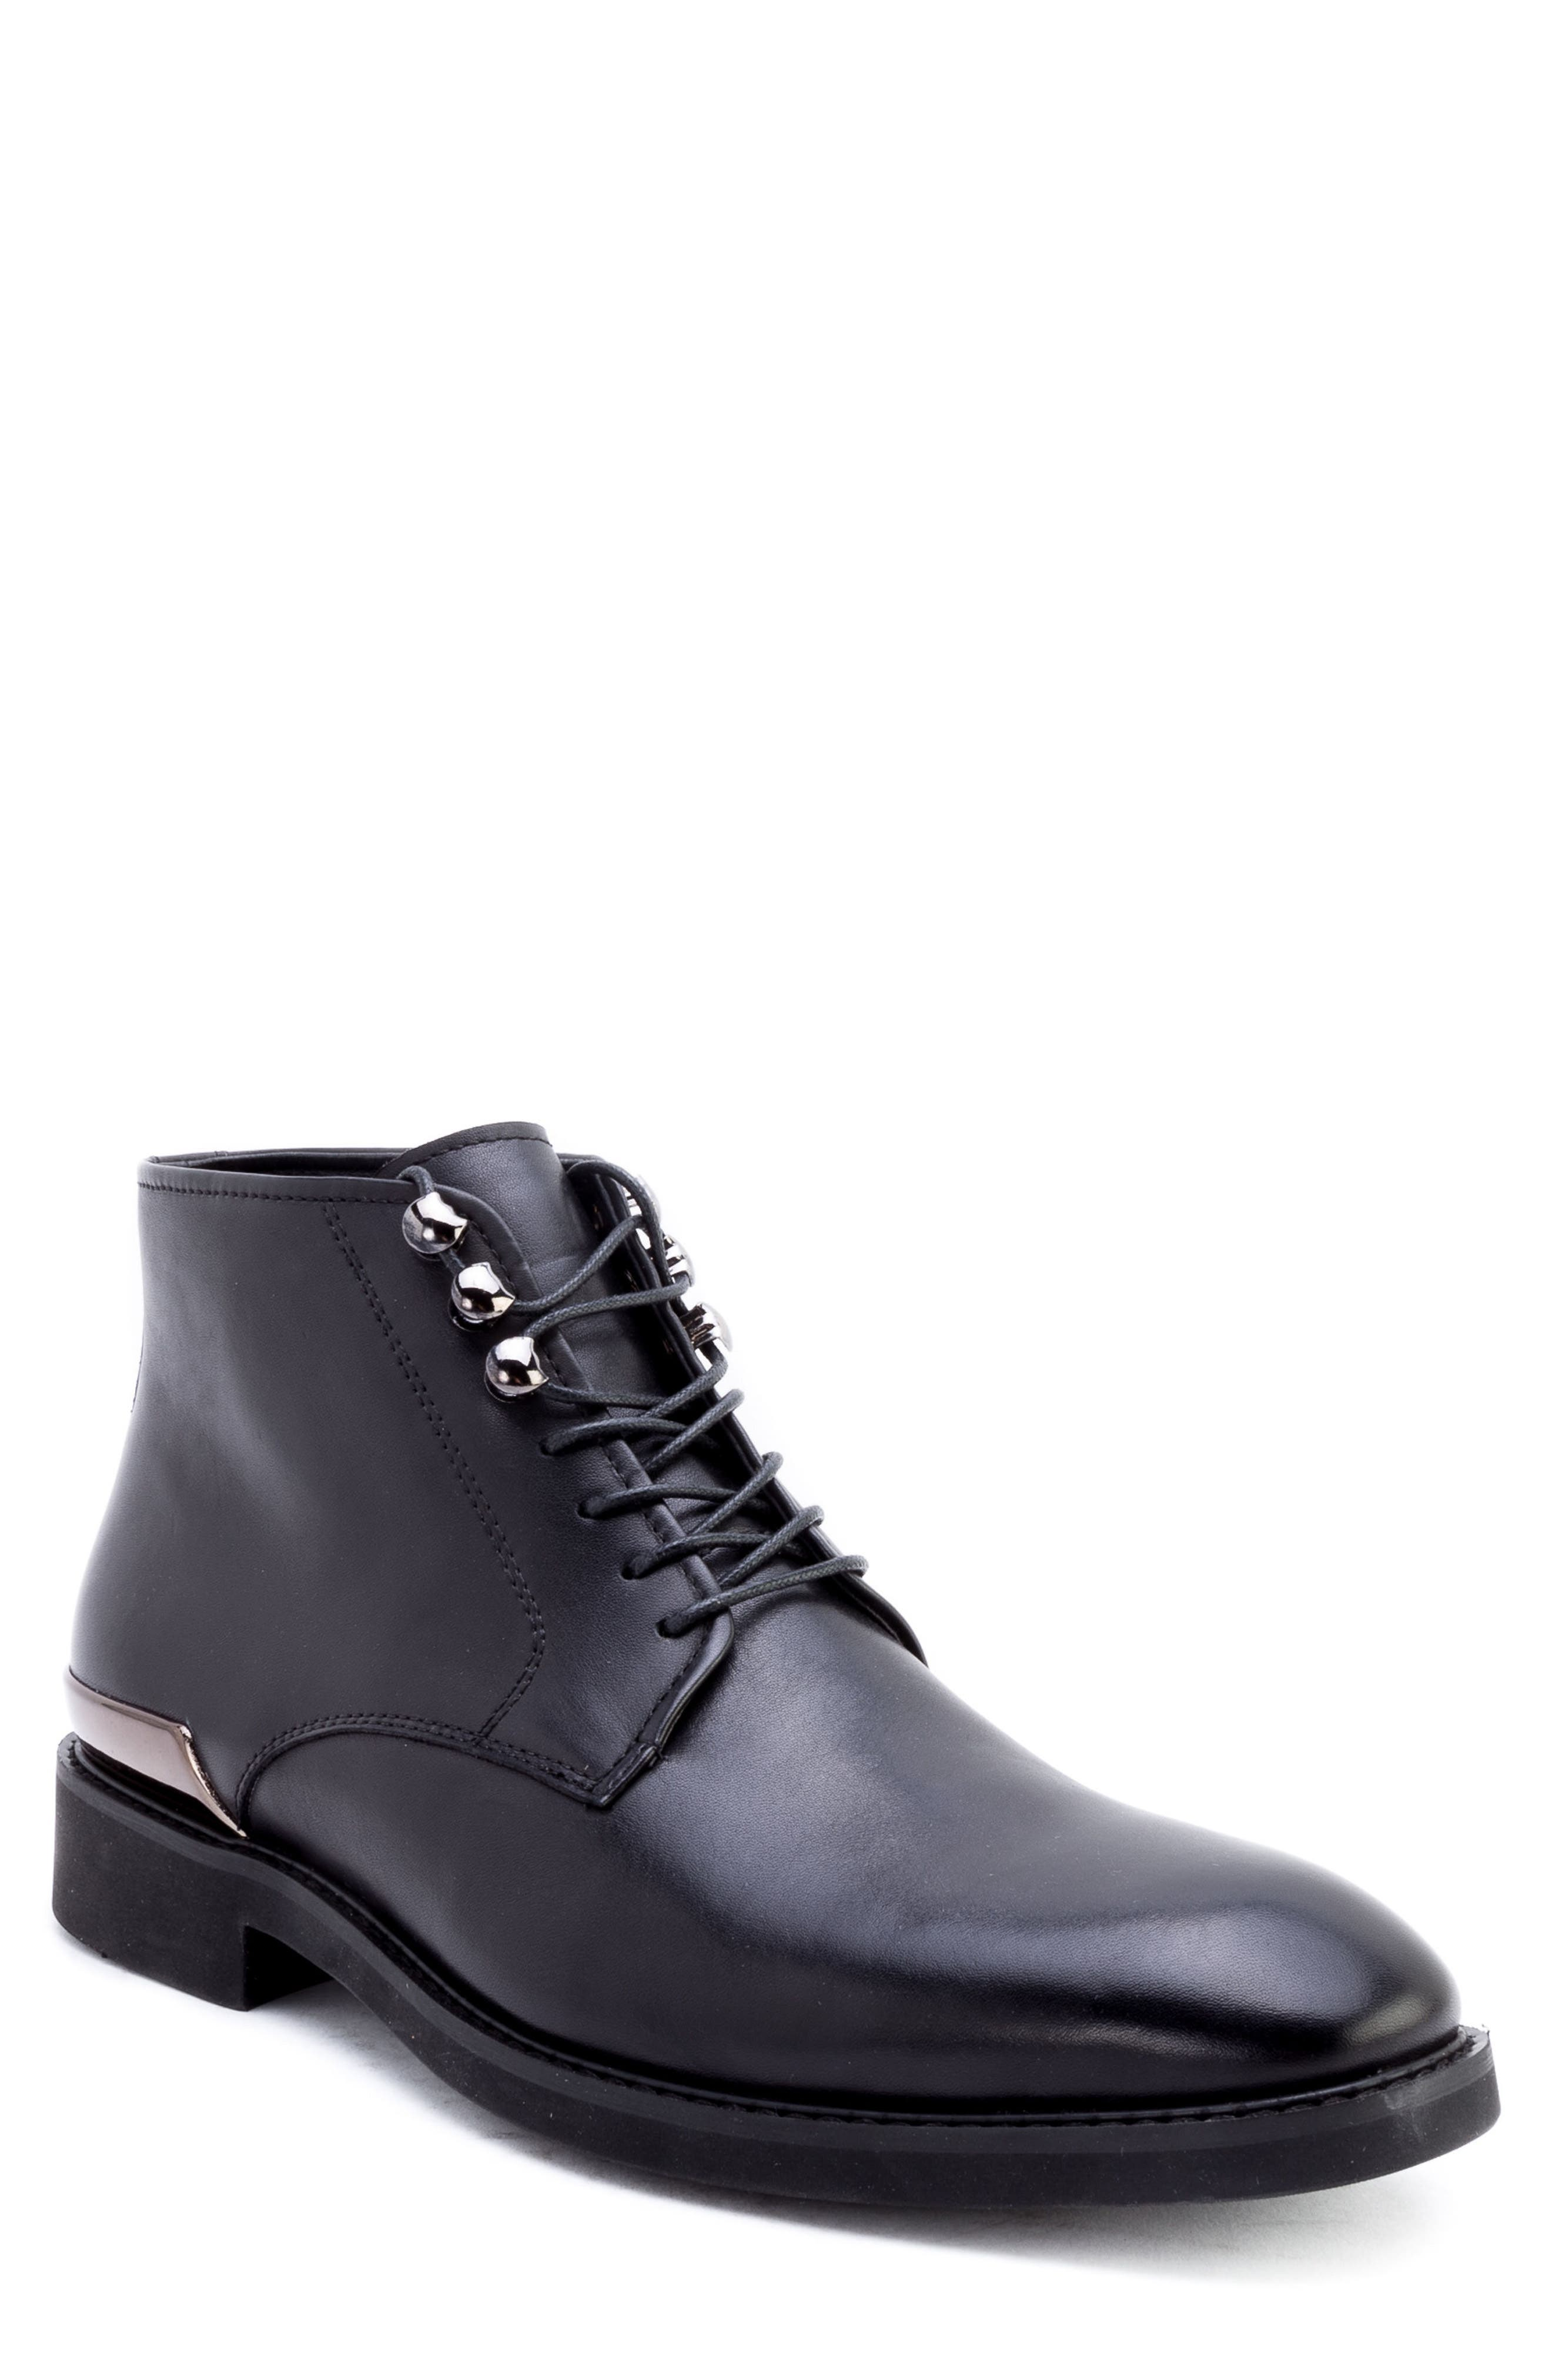 Soland Boot,                             Main thumbnail 1, color,                             BLACK LEATHER